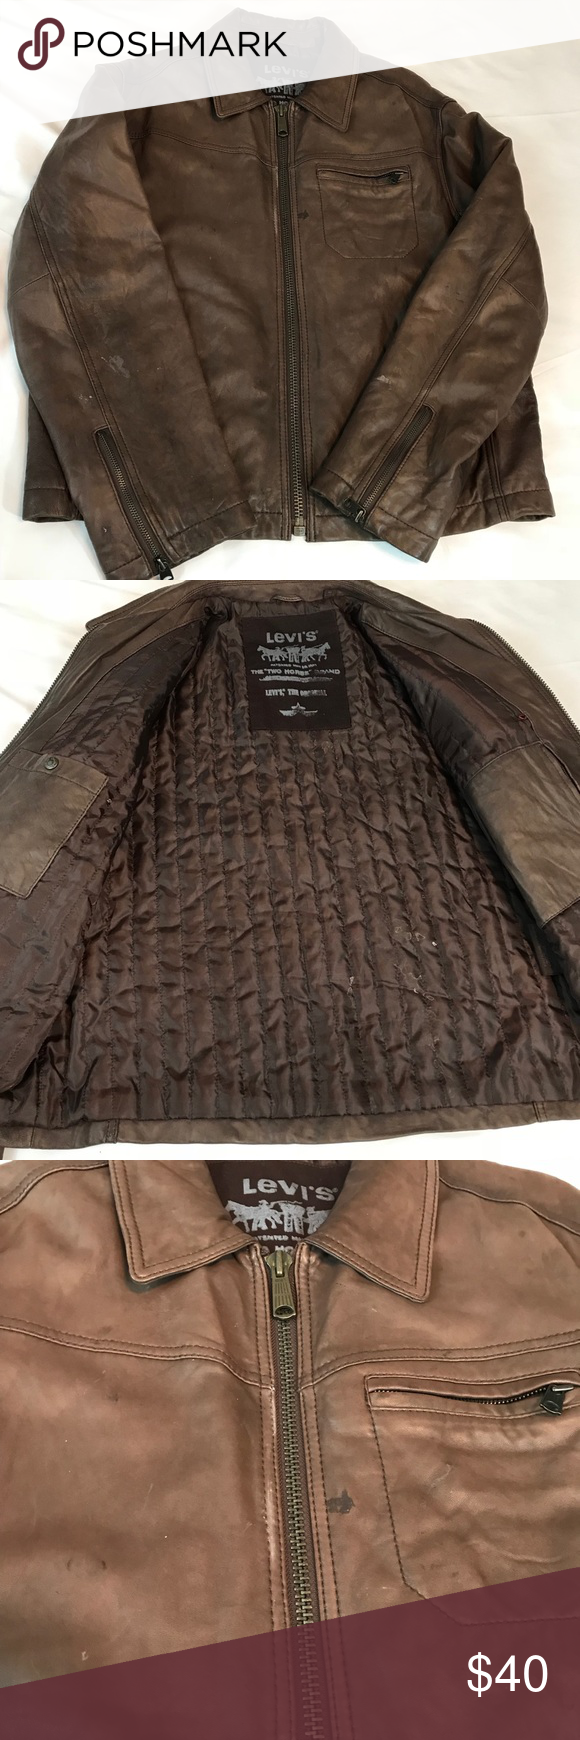 Levis brown leather jacket sz large (With images